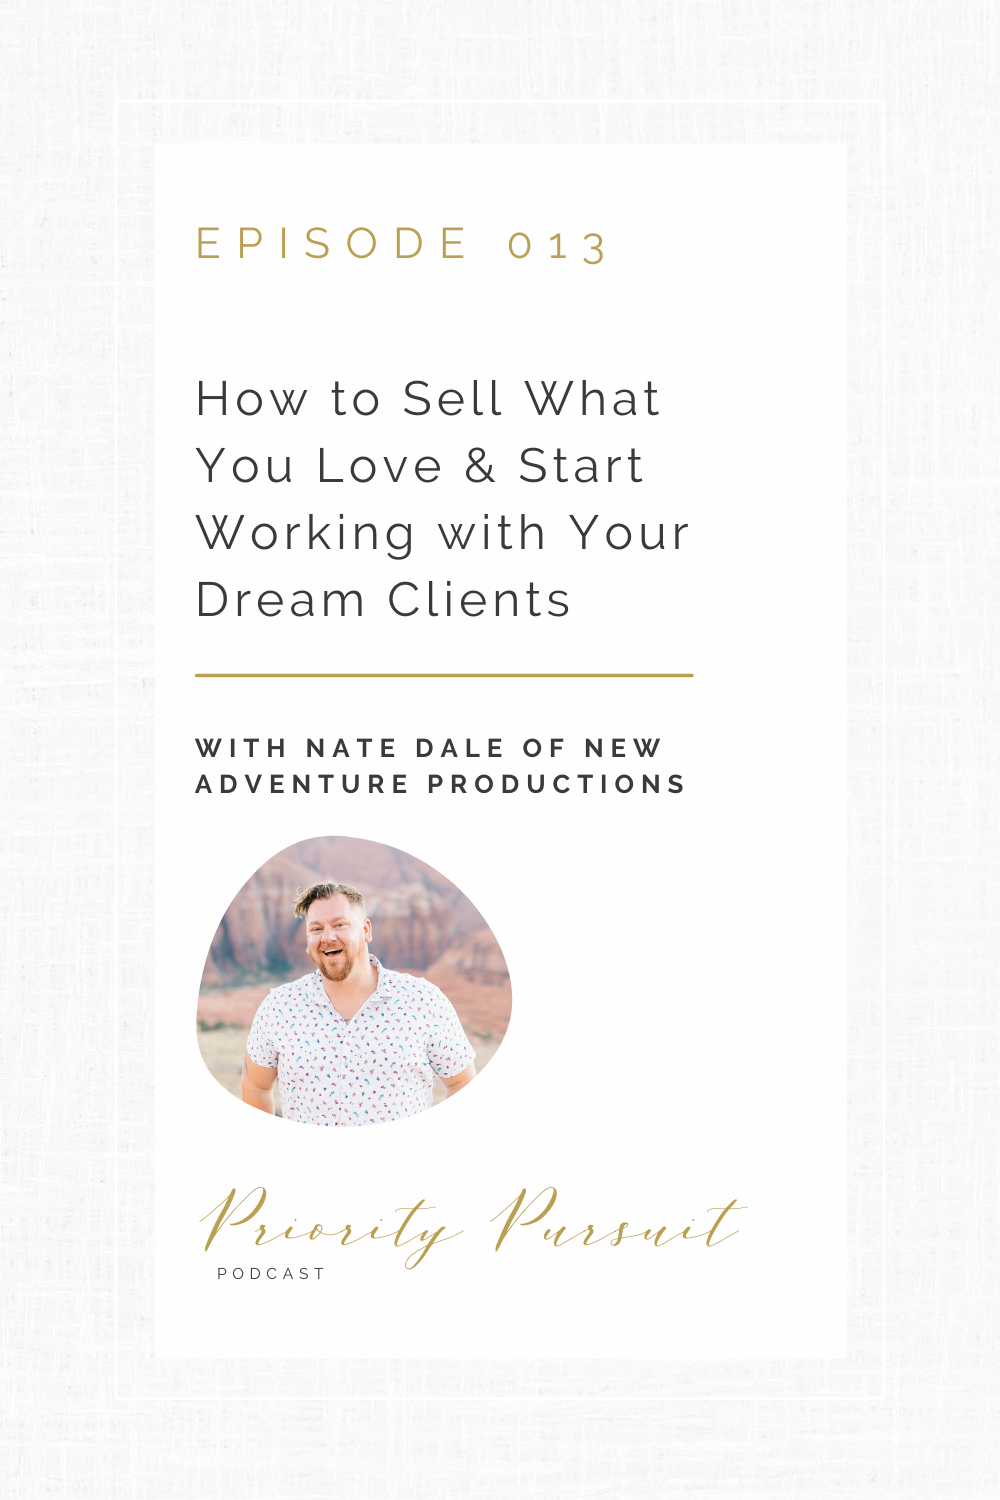 Lafayette, Indiana Wedding and Elopement Photographer Nate Dale of New Adventure Productions explains how to sell what you love and start working with your dream clients.